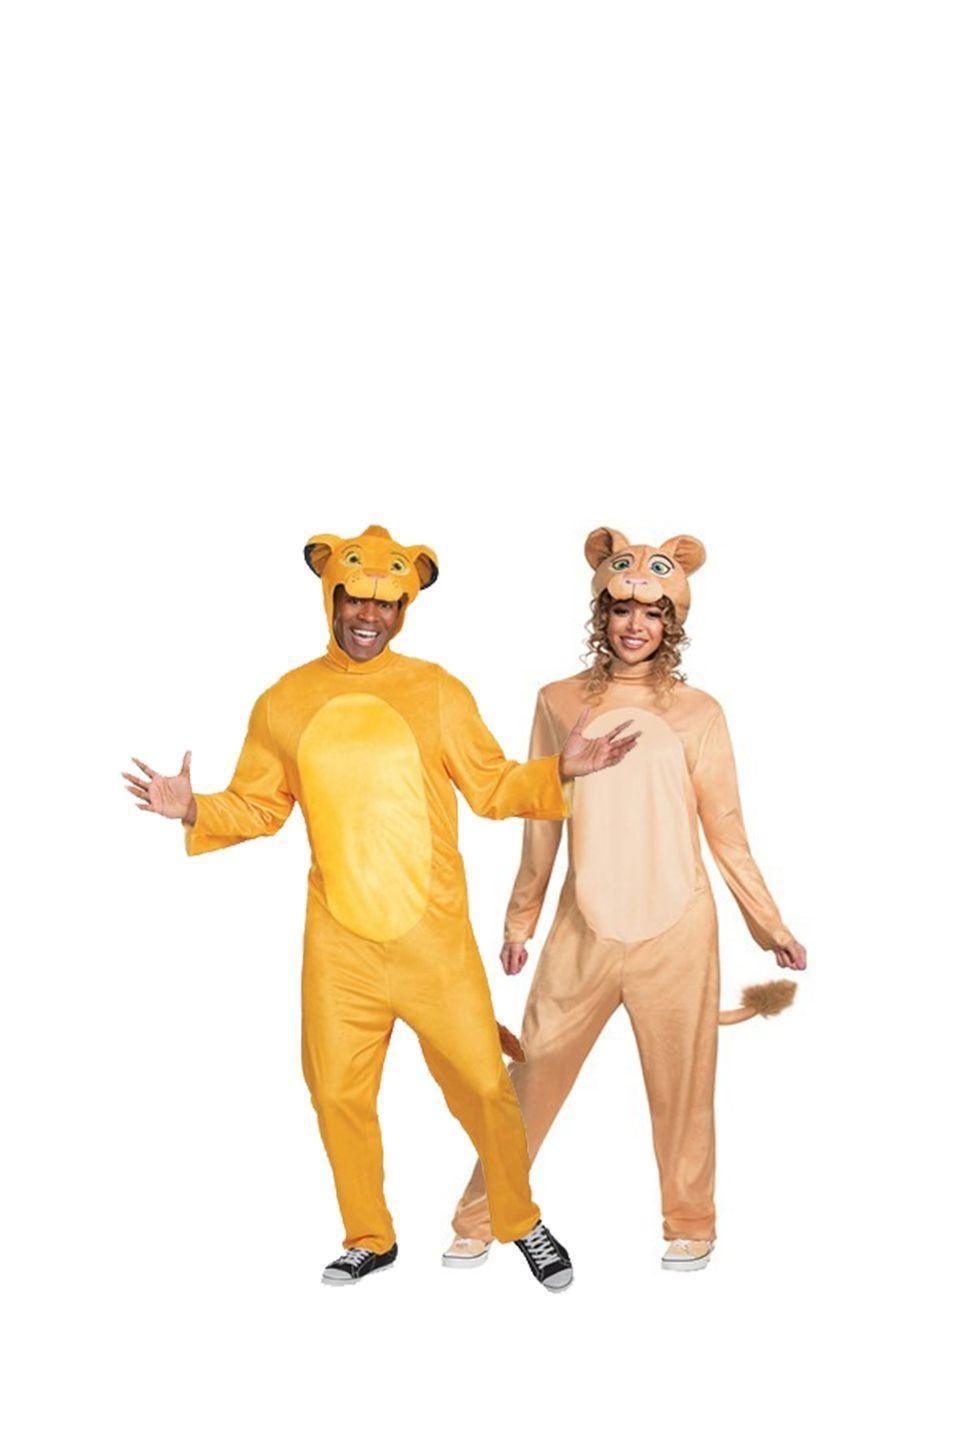 """<p>No matter your age, <em>The Lion King</em> is always a great movie. With this Simba and Nala costume, bring some of the movie's magic to life.</p><p><a class=""""link rapid-noclick-resp"""" href=""""https://go.redirectingat.com?id=74968X1596630&url=https%3A%2F%2Fwww.halloweencostumes.com%2Flion-king-animated-adult-simba-jumpsuit-costume.html&sref=https%3A%2F%2Fwww.womansday.com%2Fstyle%2Fg28691602%2Fdisney-couples-costumes%2F"""" rel=""""nofollow noopener"""" target=""""_blank"""" data-ylk=""""slk:SHOP SIMBA COSTUME"""">SHOP SIMBA COSTUME</a></p><p><a class=""""link rapid-noclick-resp"""" href=""""https://go.redirectingat.com?id=74968X1596630&url=https%3A%2F%2Fwww.halloweencostumes.com%2Flion-king-animated-adult-nala-jumpsuit-costume.html&sref=https%3A%2F%2Fwww.womansday.com%2Fstyle%2Fg28691602%2Fdisney-couples-costumes%2F"""" rel=""""nofollow noopener"""" target=""""_blank"""" data-ylk=""""slk:SHOP NALA COSTUME"""">SHOP NALA COSTUME</a> </p>"""